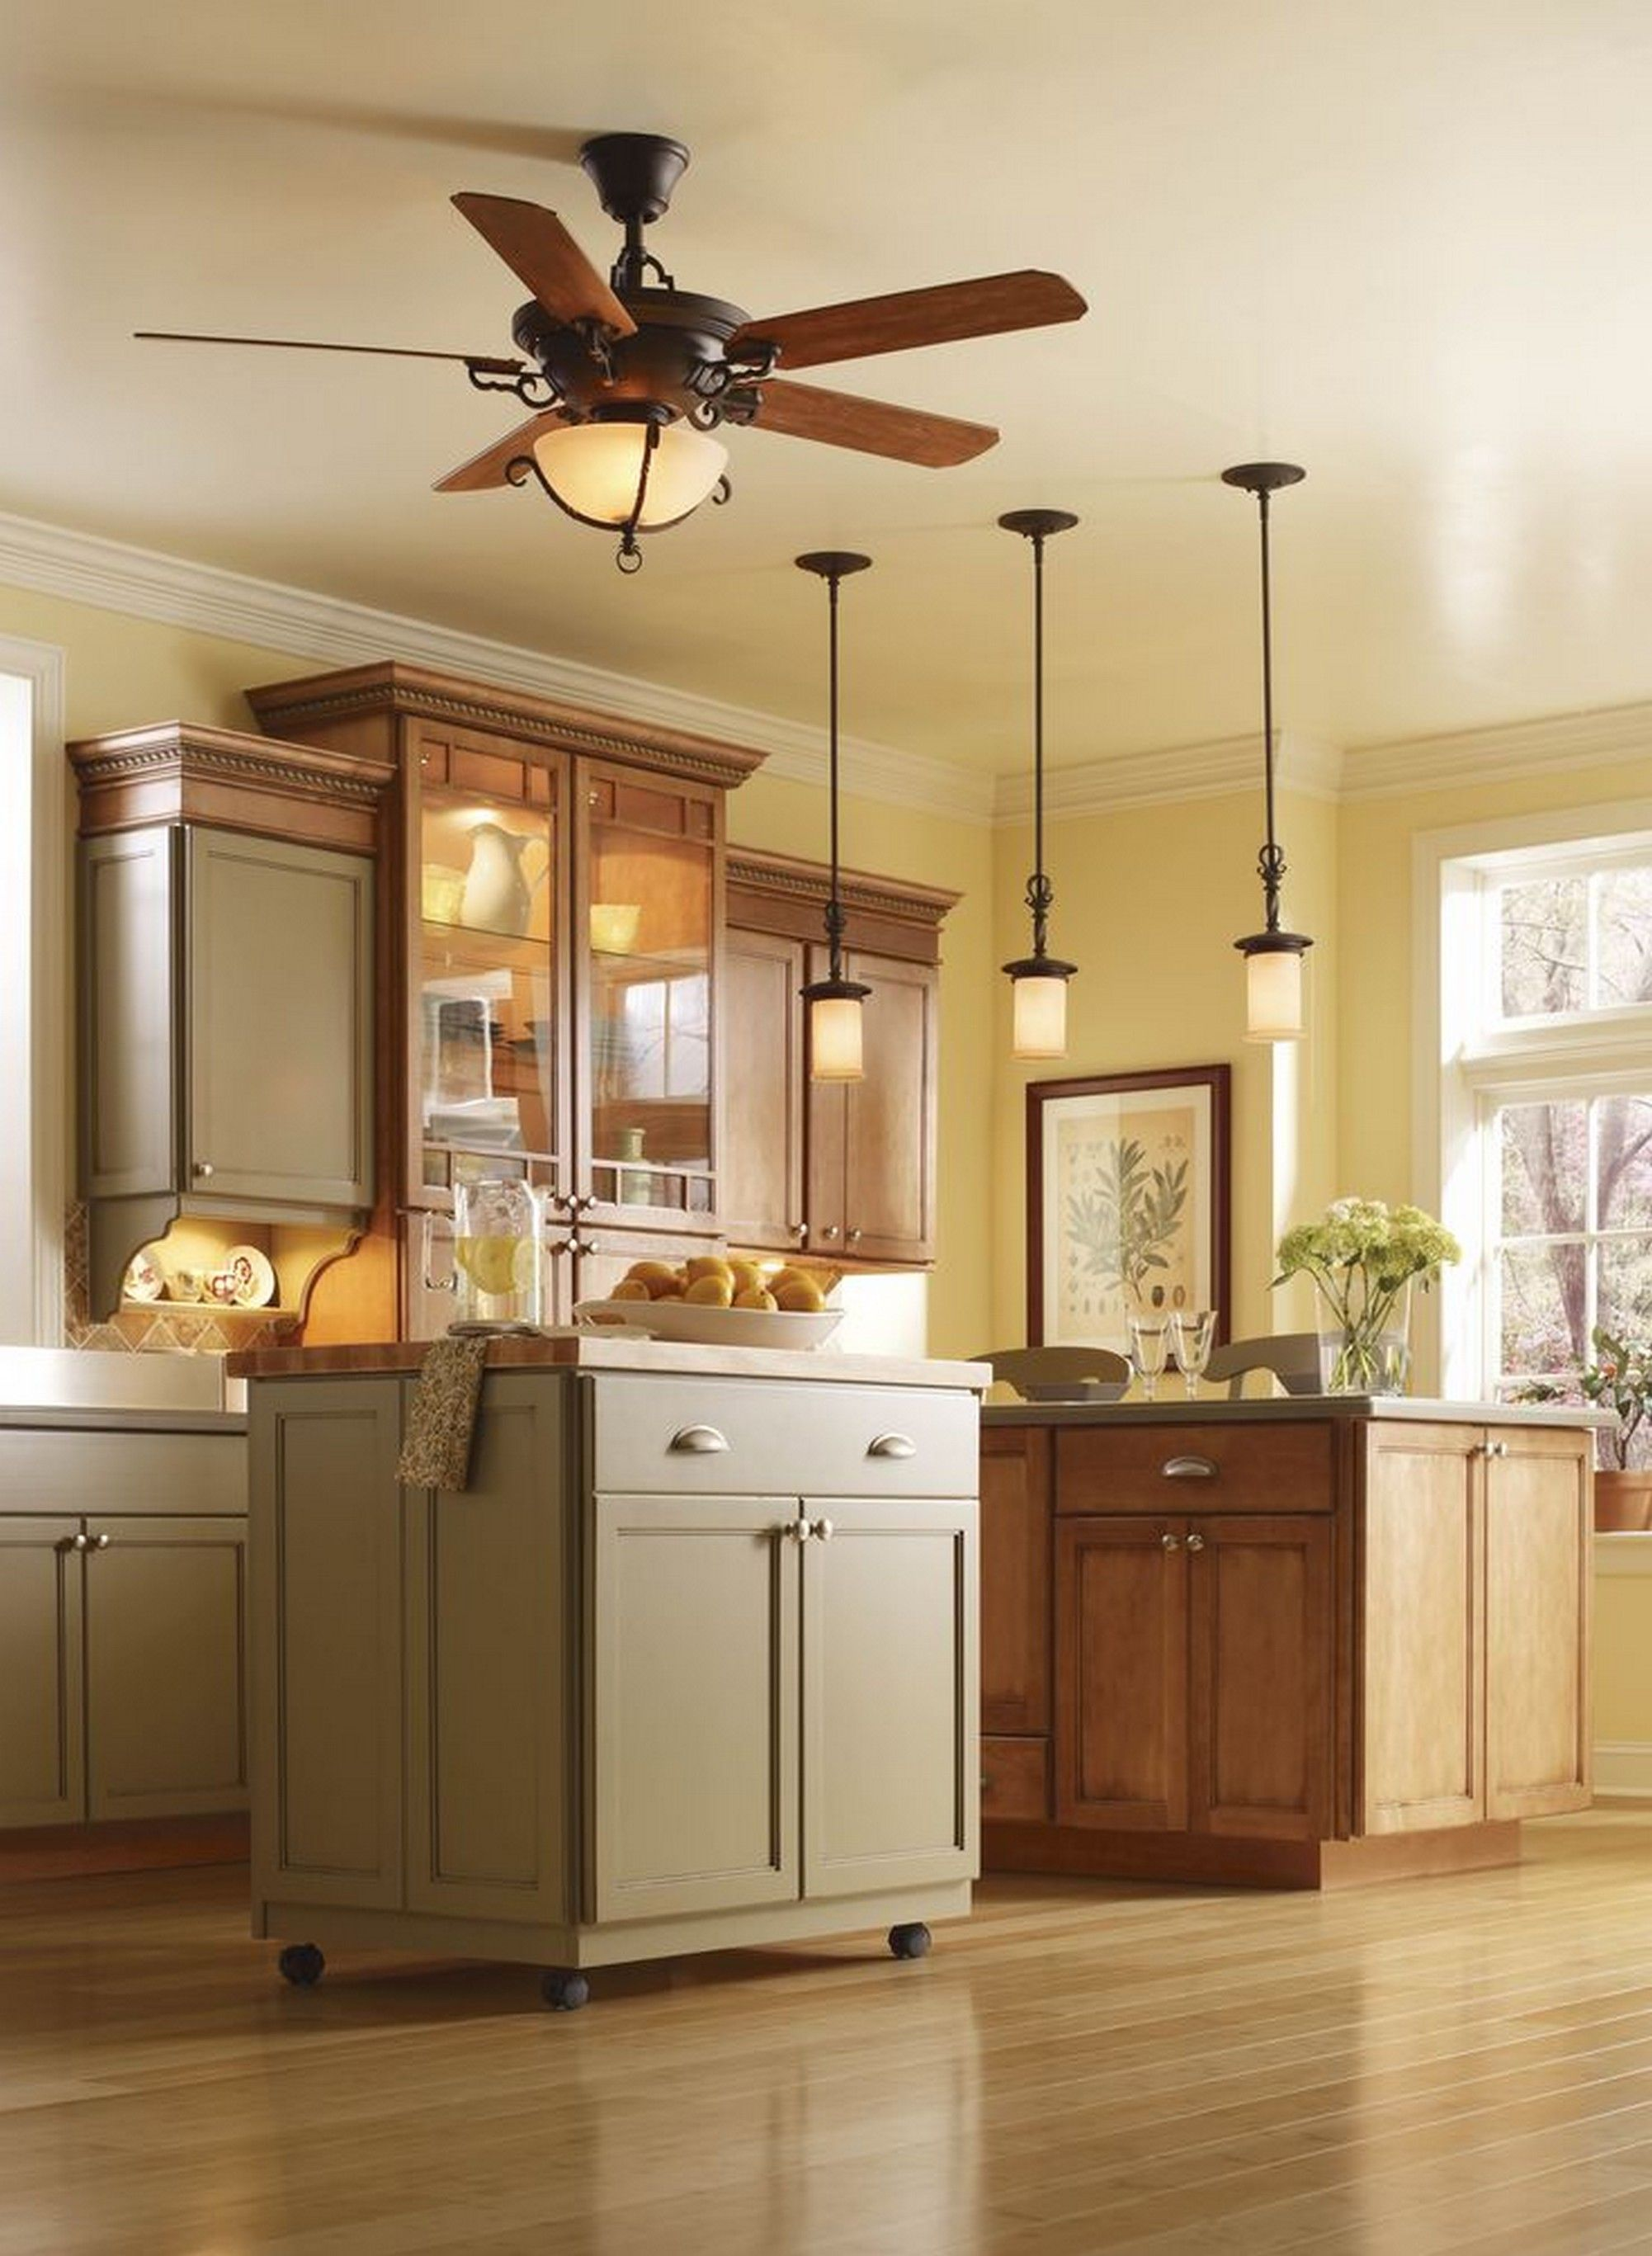 Small Island Under Awesome Kitchen Ceiling Lights With Wooden